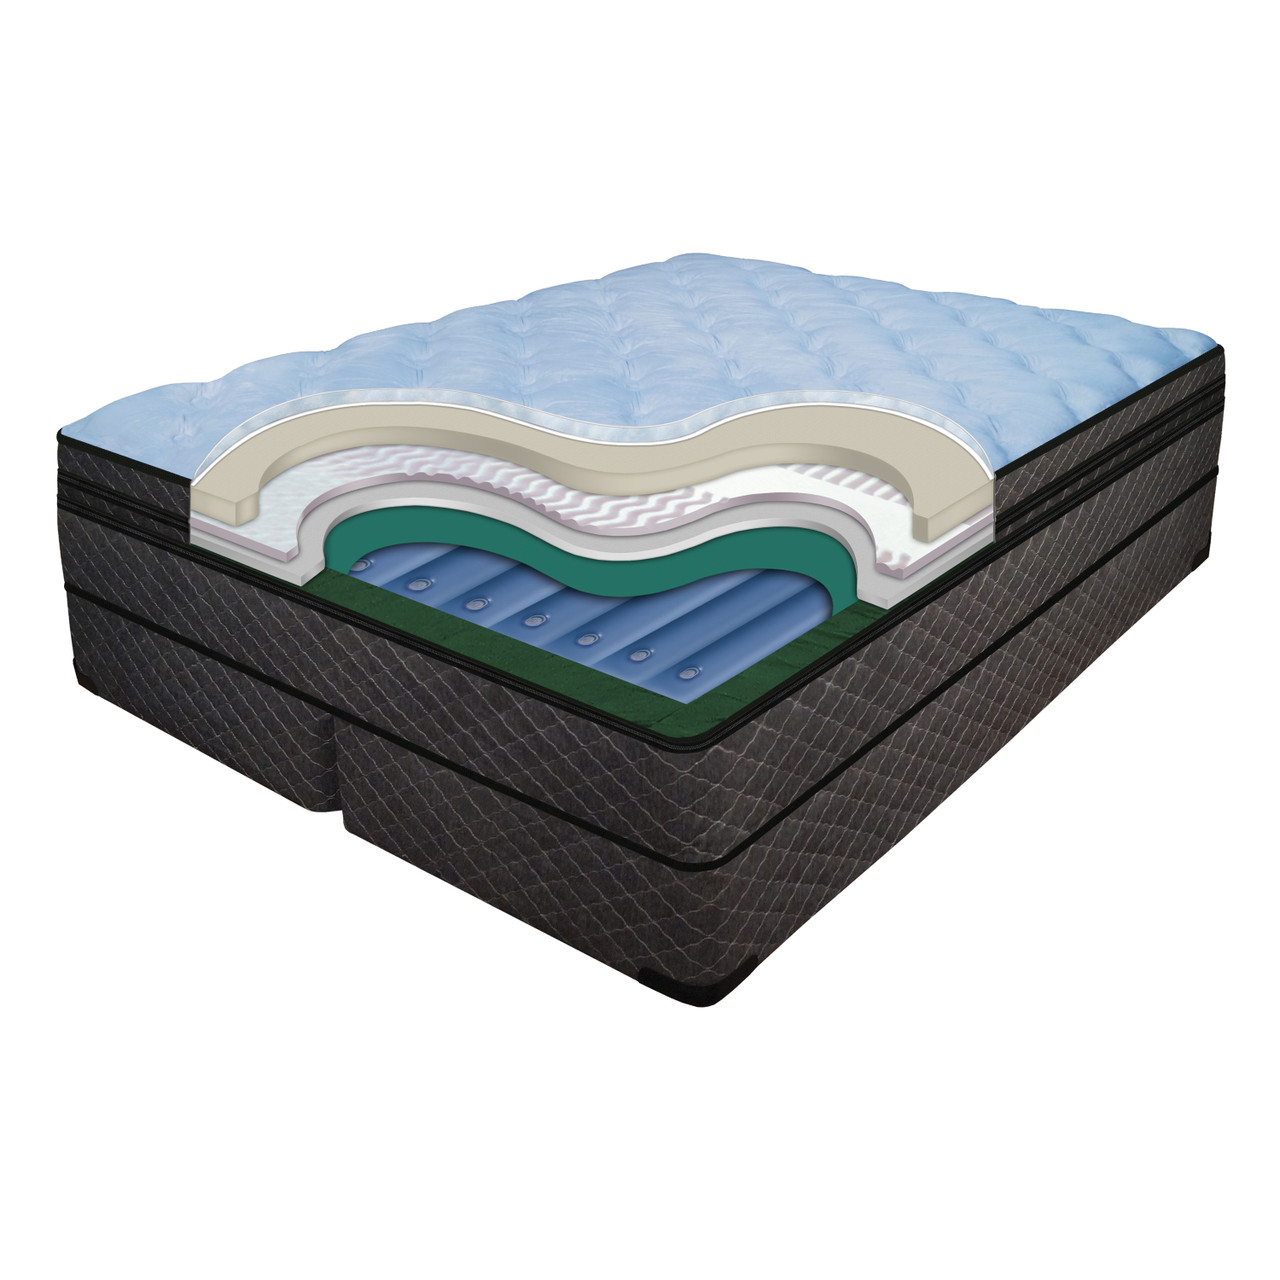 Cashmere 13 Inch Mattress Softside Luxury Support Waterbed